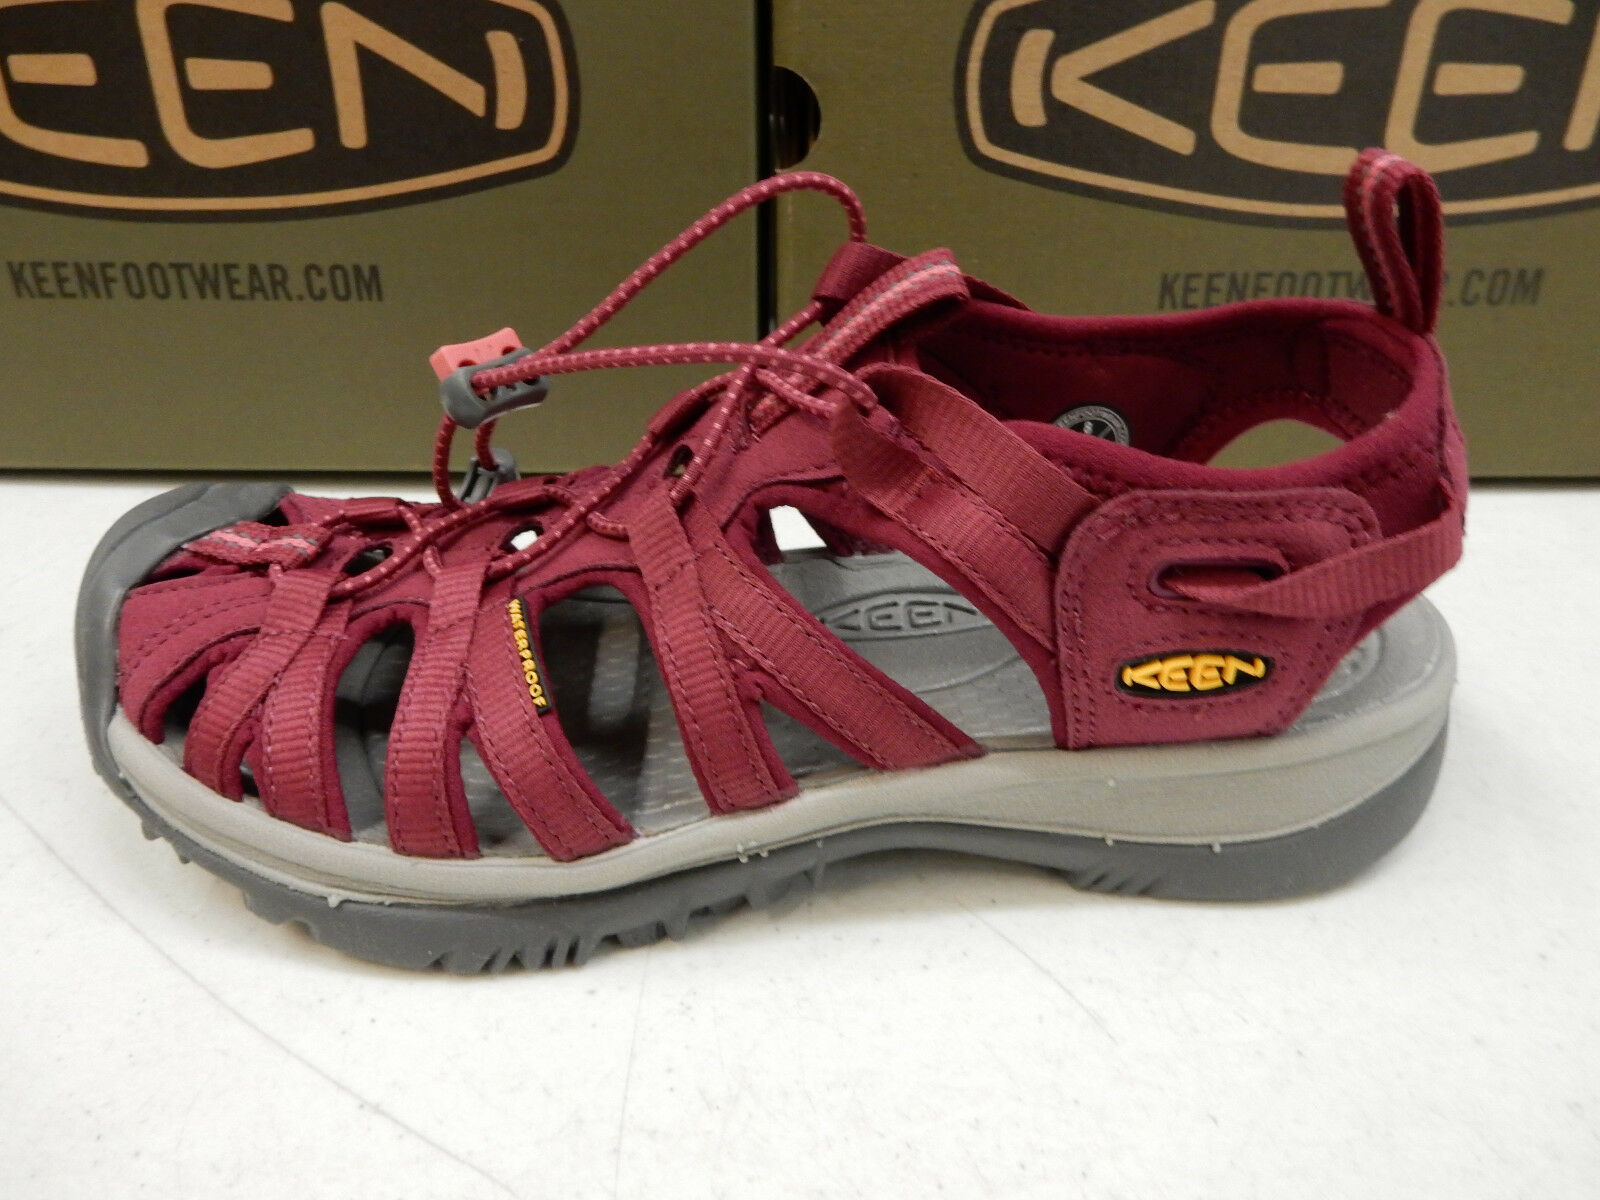 Keen femmes Whisper Beet rouge Honeysuckle Taille Taille Taille 11 281edf